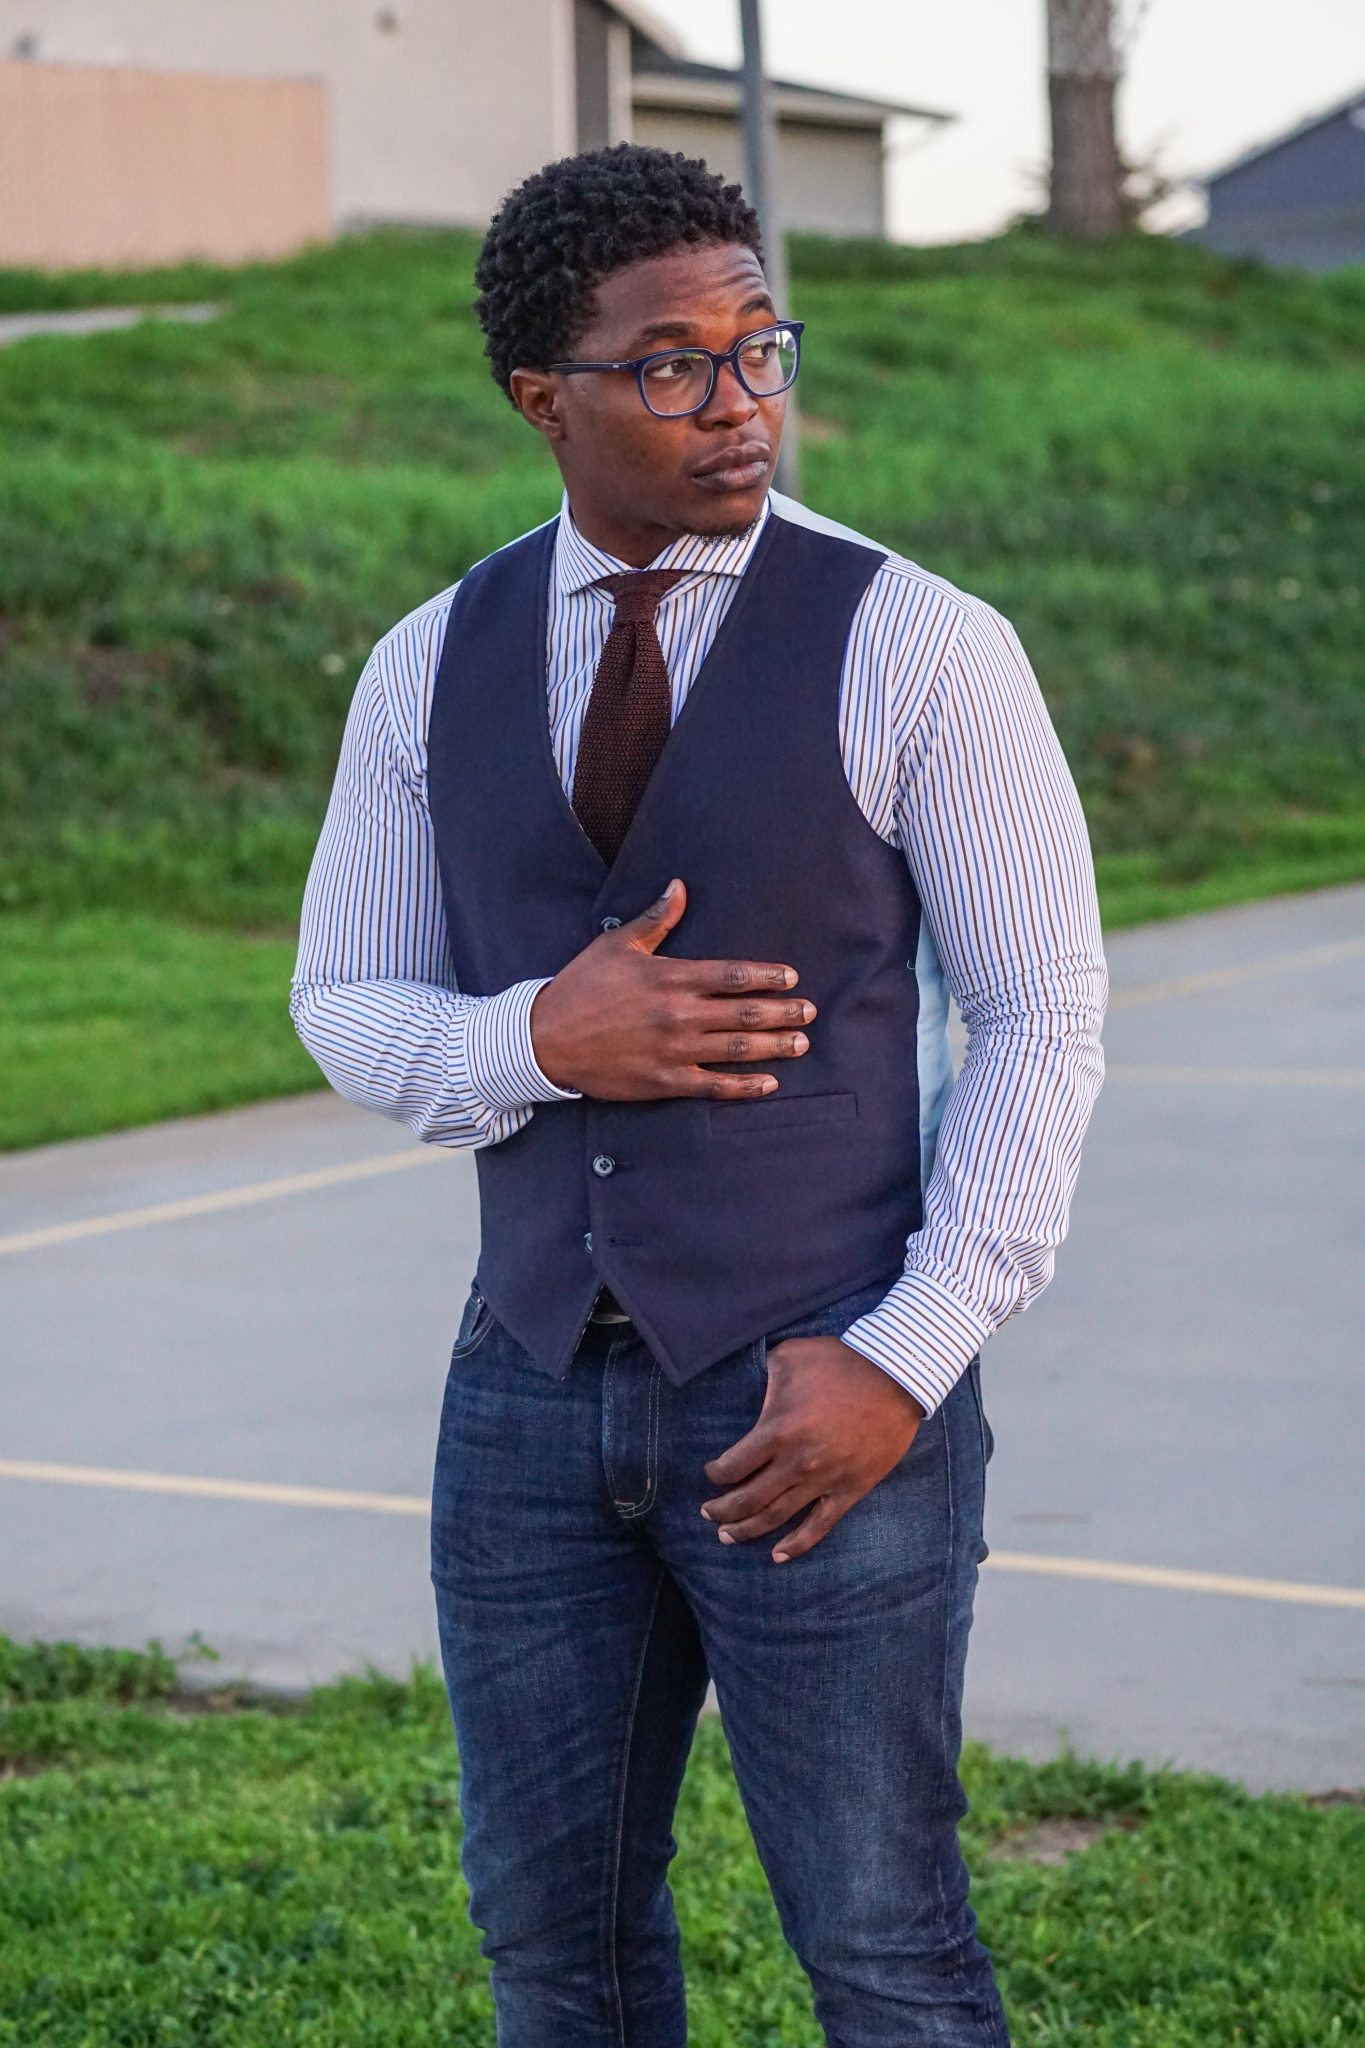 dapper-advisor-invest in yourself-black-man-wearing-navy-waistcoat-brown-silk-knit-tie-custom-itailor-stripe-shirt-men-5